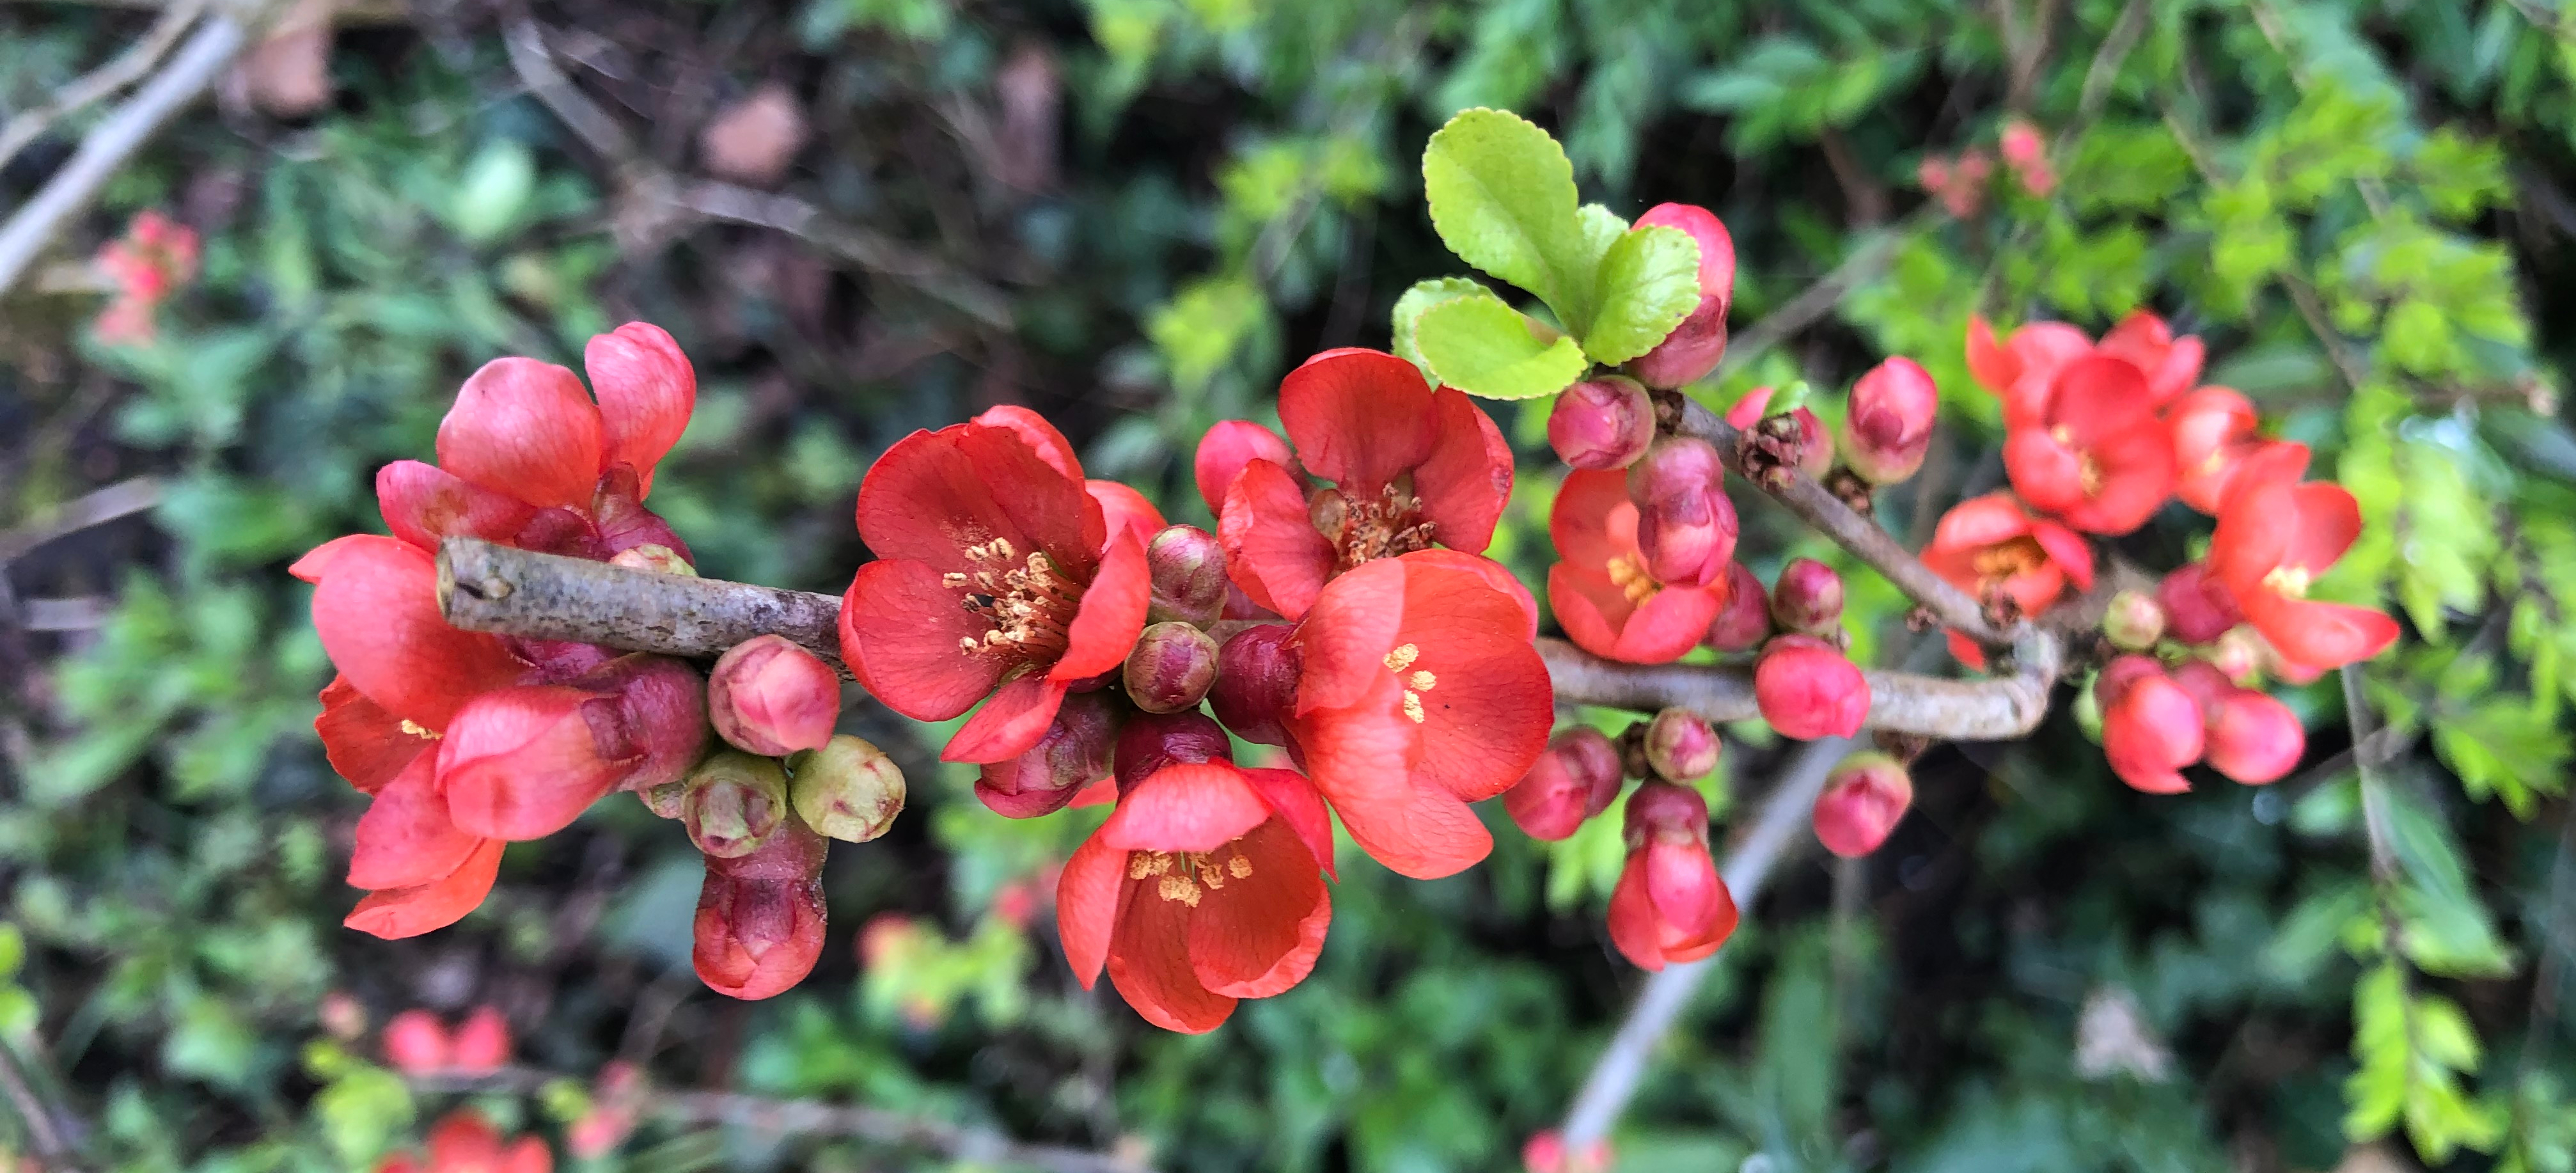 Quince in bloom. The flowers are a deep flame orange.